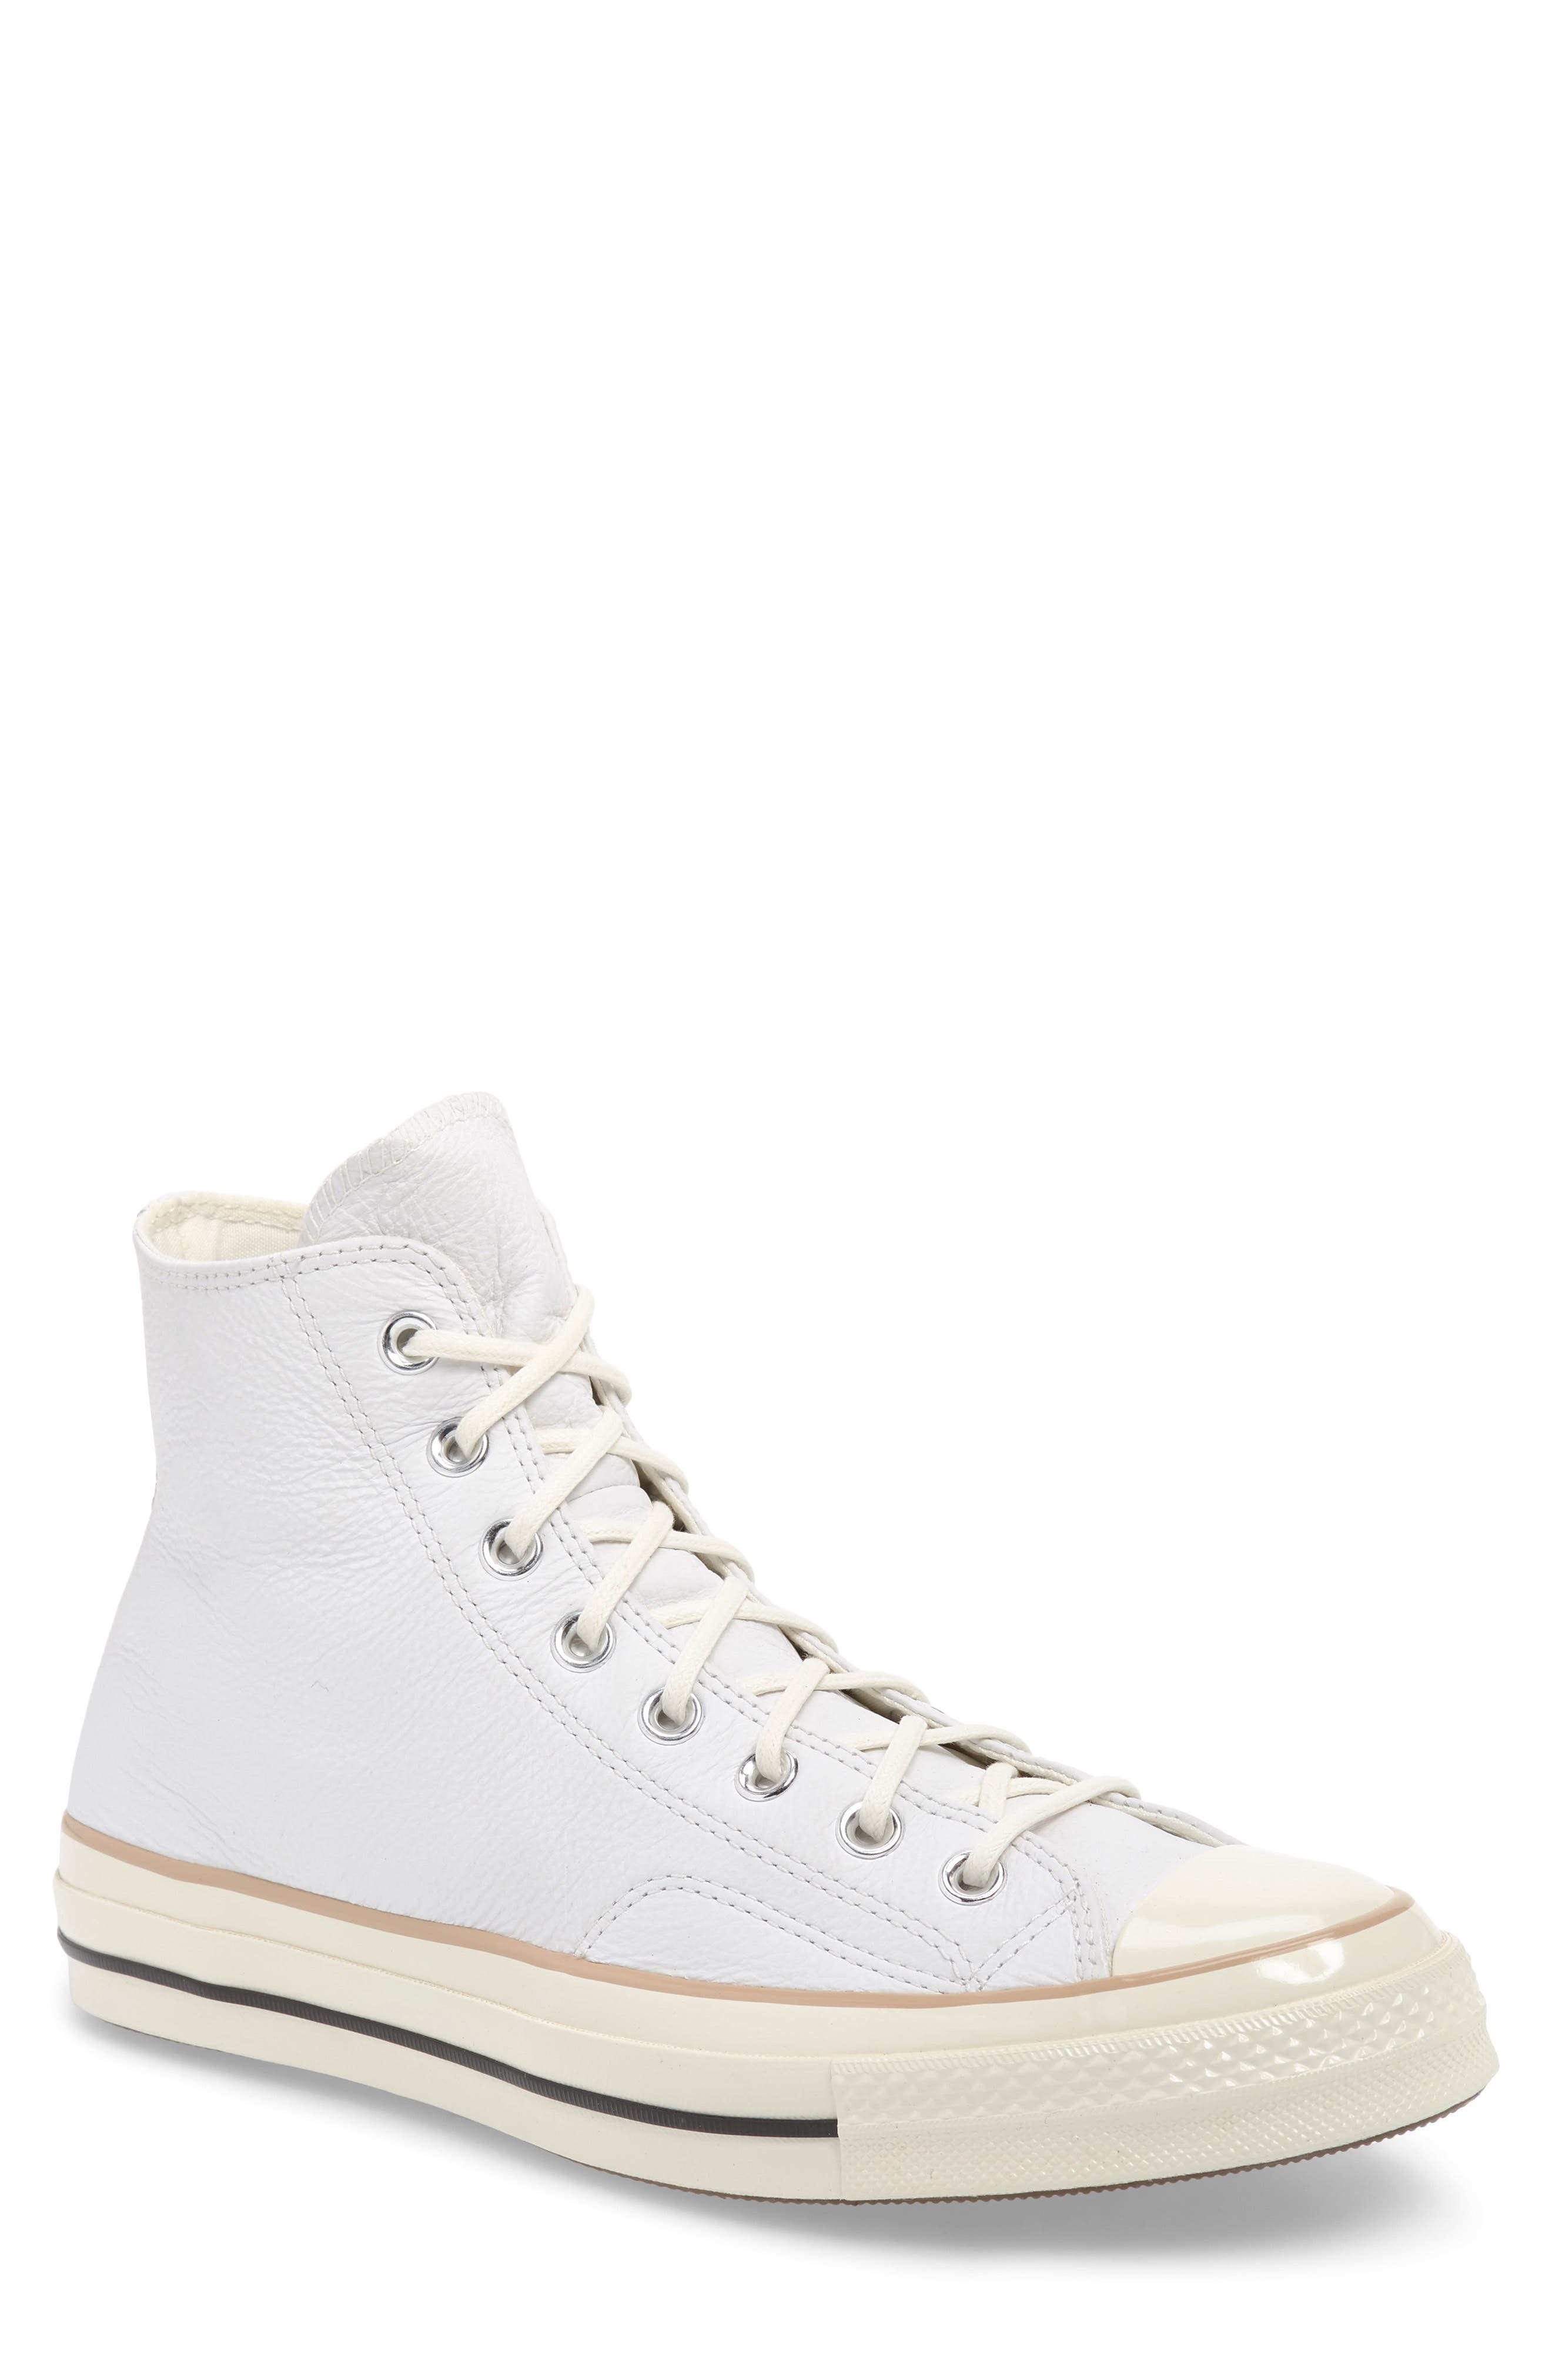 Chuck 70 Boot Leather High Top Sneaker,                         Main,                         color, WHITE/ LIGHT FAWN/ EGRET